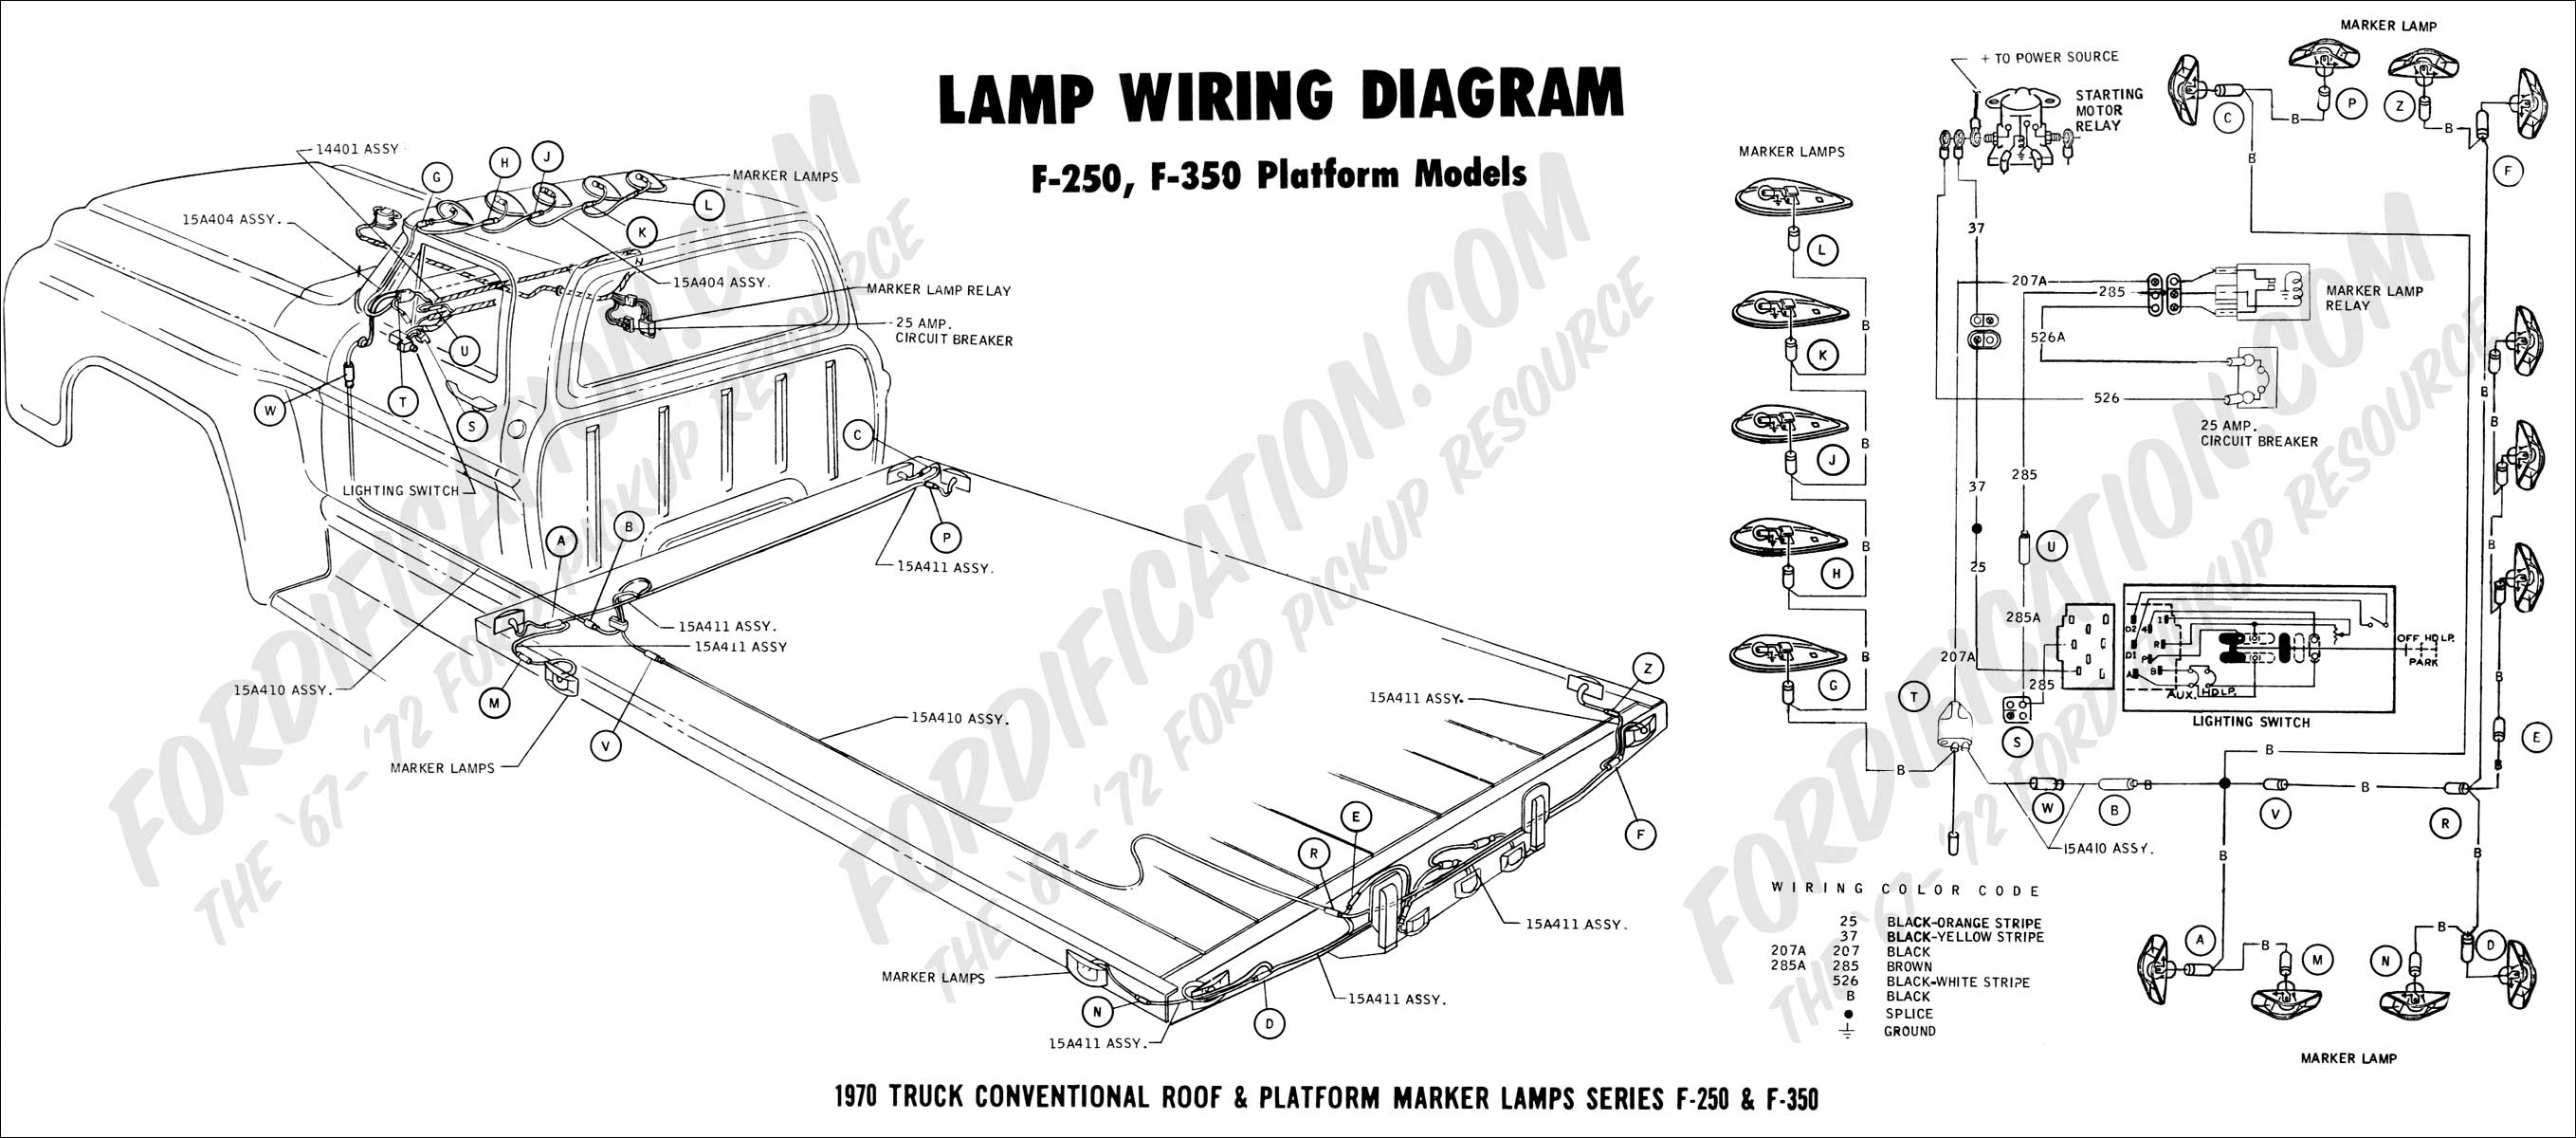 Crank Sensor Location 68932 furthermore Ford Alternator Wiring Diagrams furthermore 2007 Ford Lcf Fuse Box Location moreover 3g Tl Fuse Box Add Circuit Questions 897055 as well Change Door Lock. on f150 brake light wiring diagram